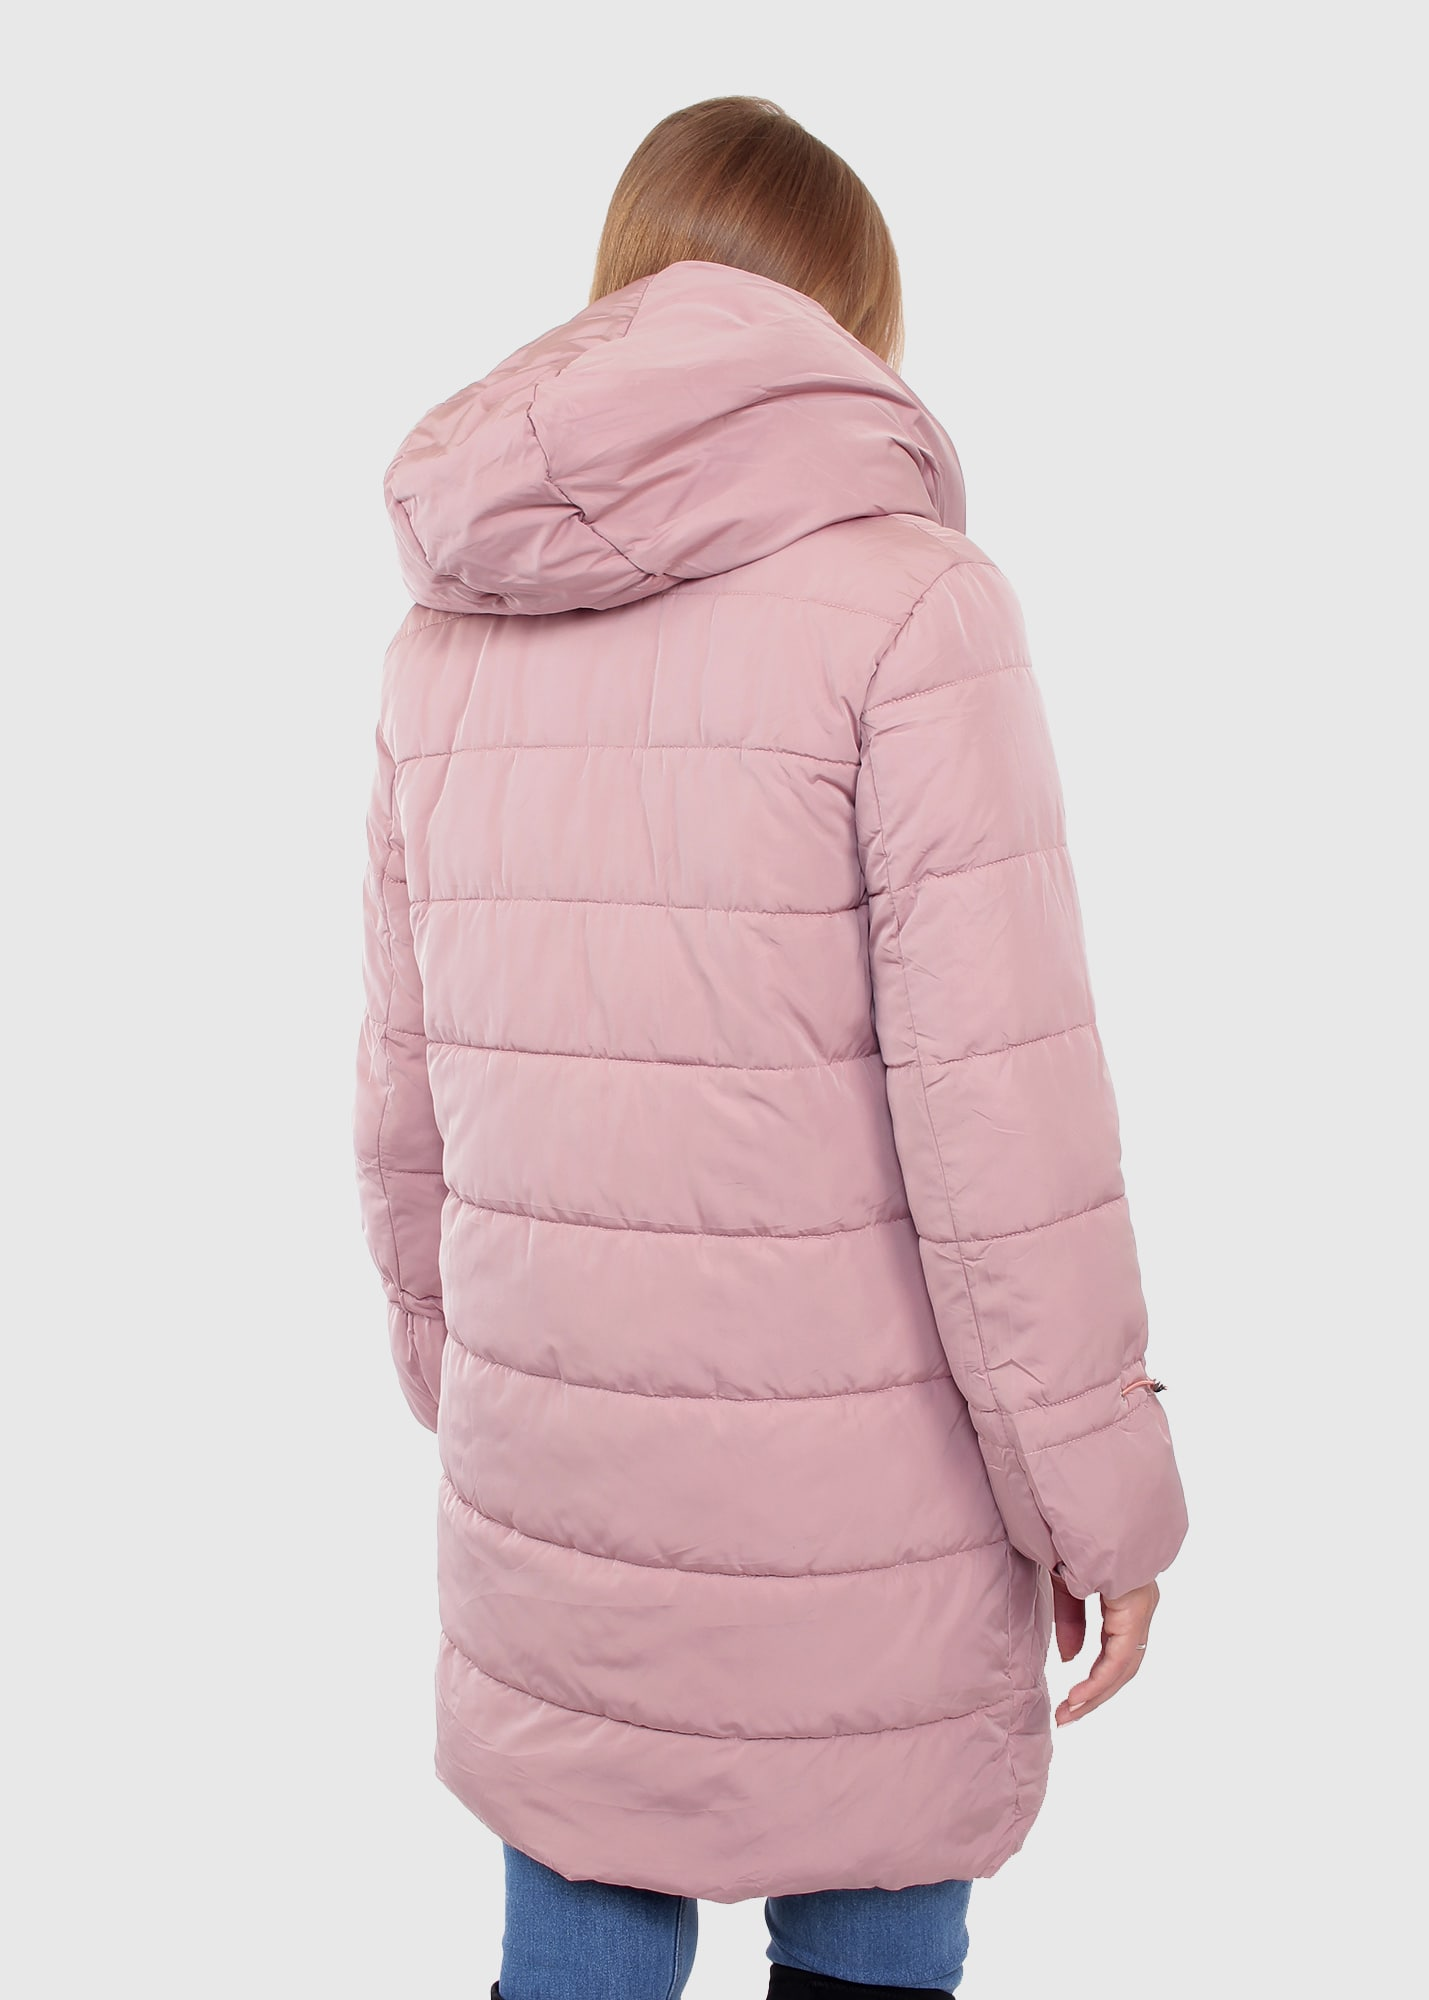 Photo №1 Elma pink women's jacket